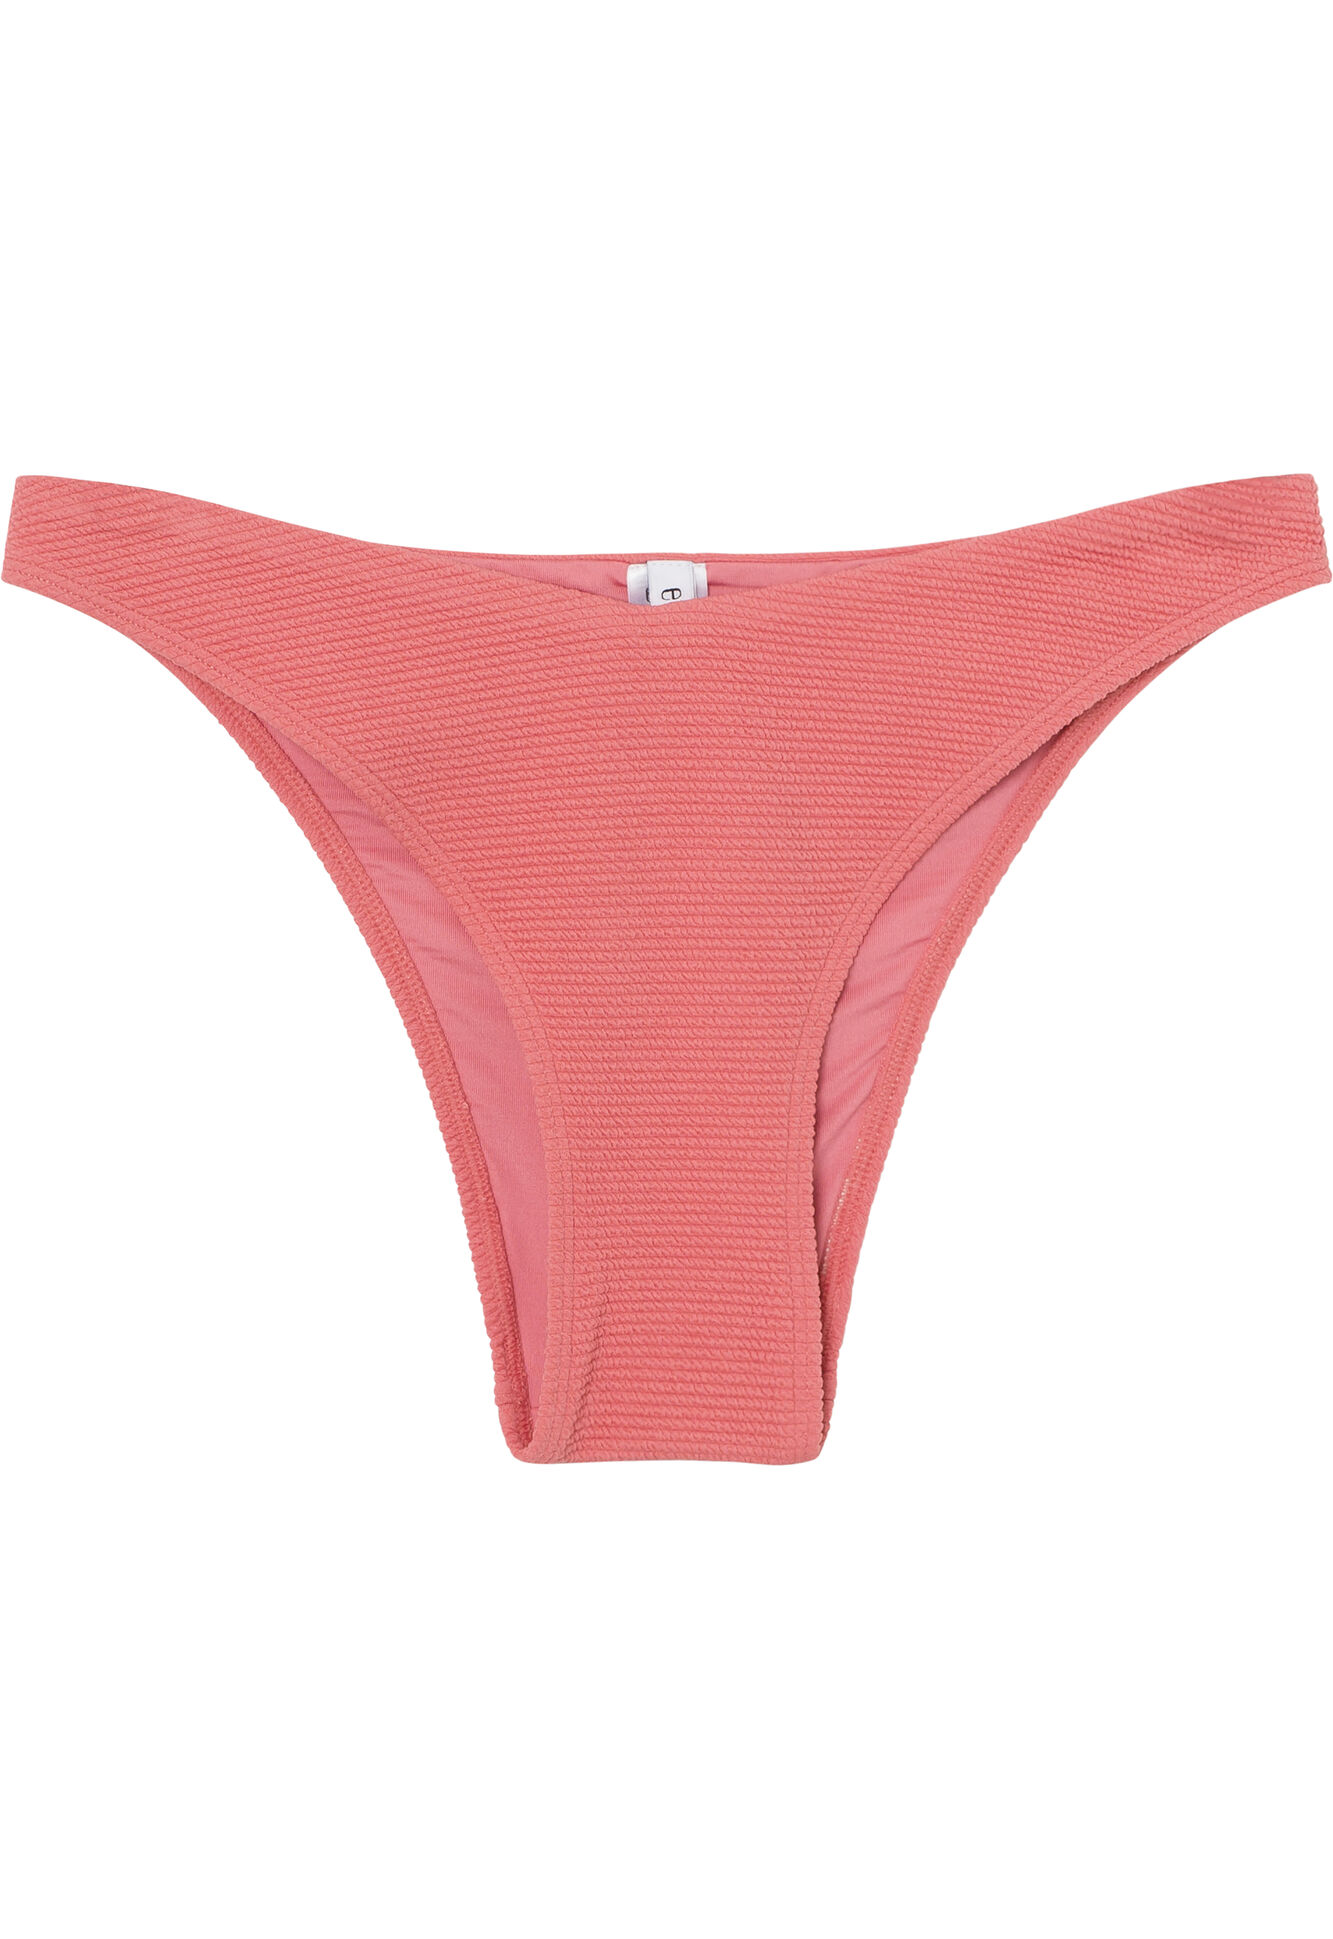 ENANGELFISH SWIM PANTIES 5325